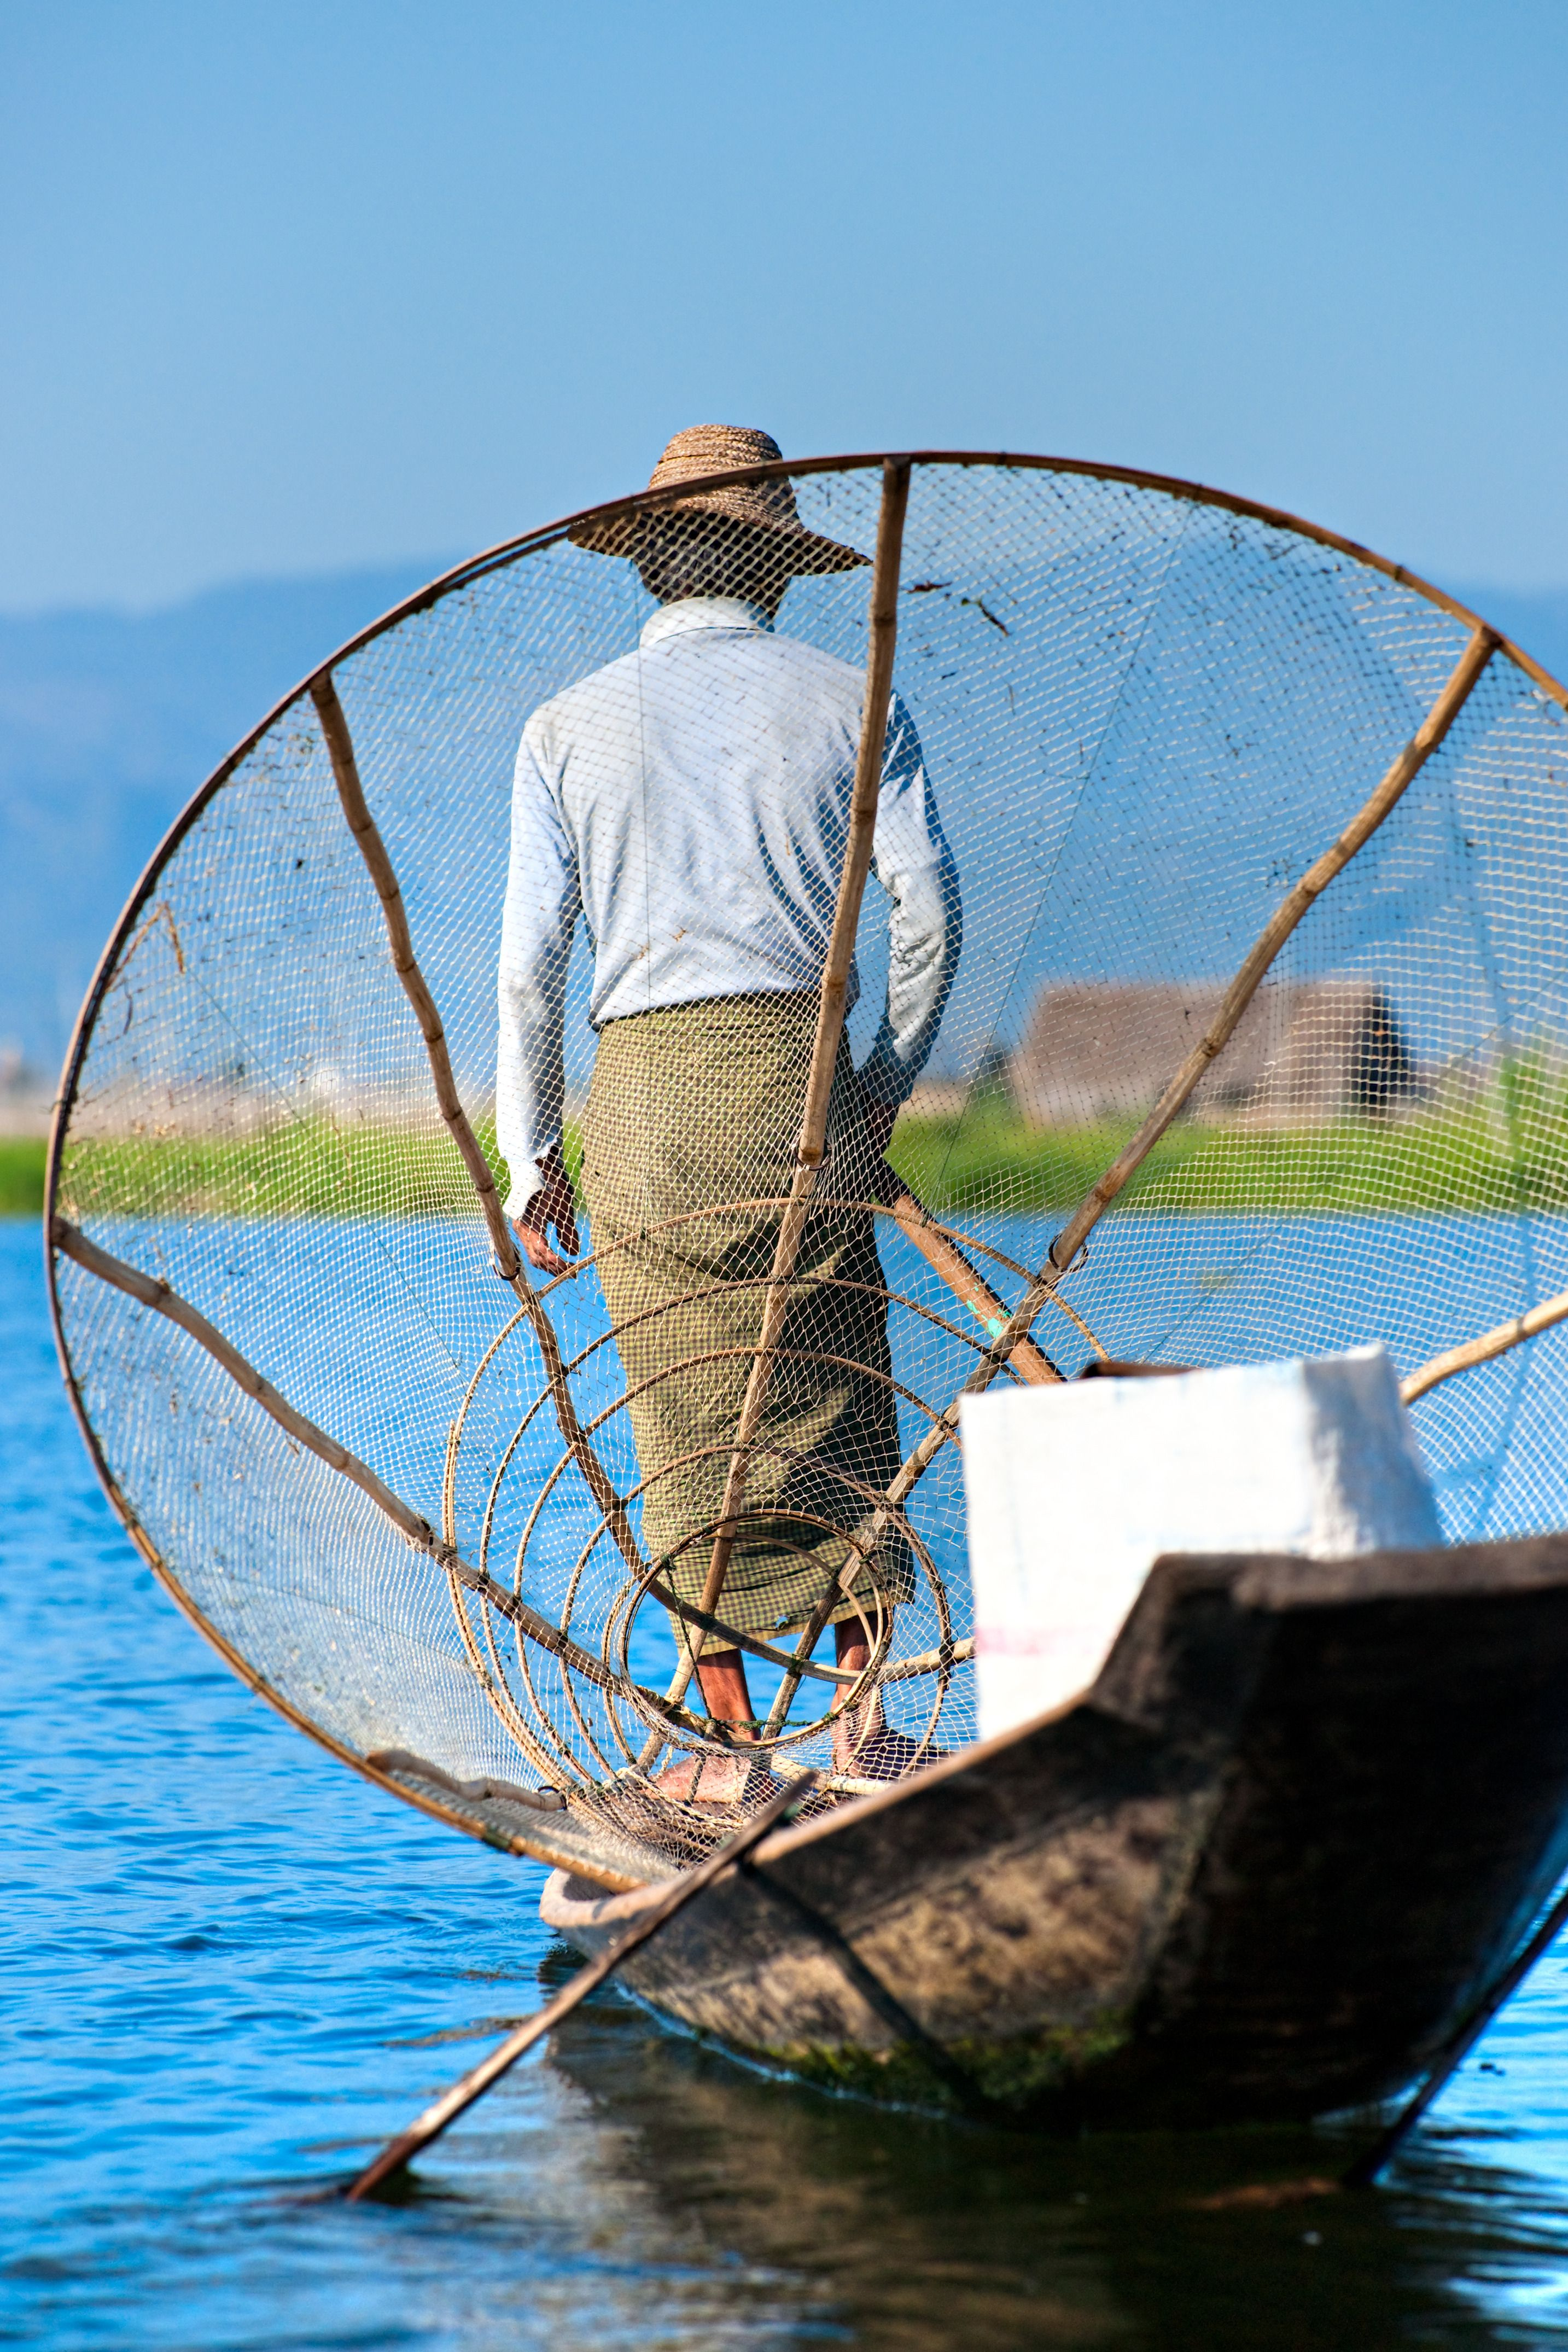 A fisherman in Inle Lake http://www.buffalotours.com/Myanmar-tours.html #myamar #burma #travel #buffalotours #tourism #adventure